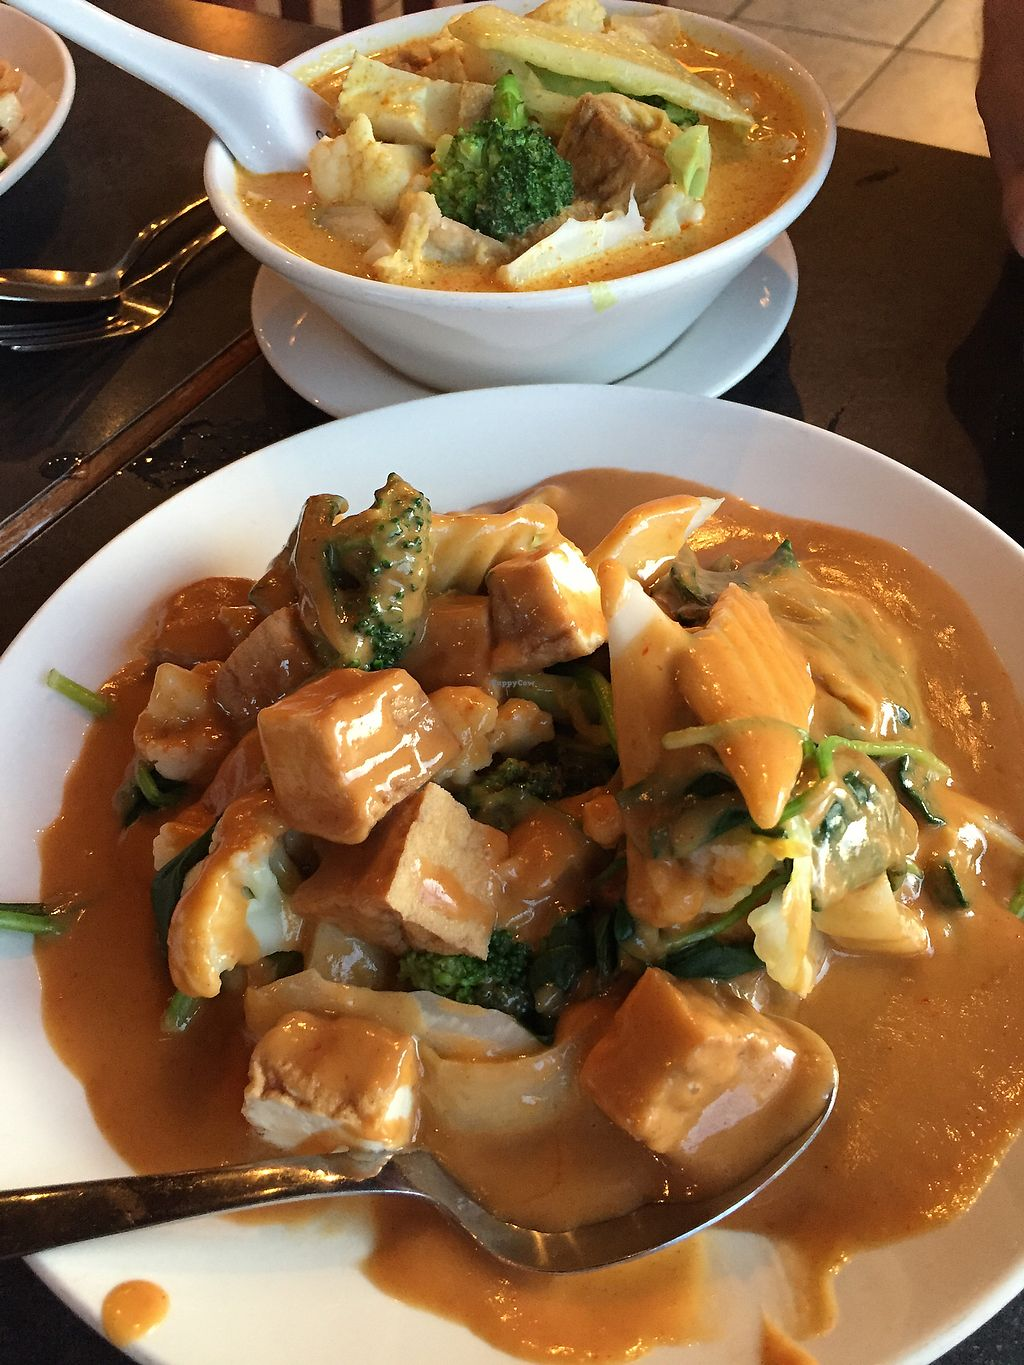 "Photo of Little Thai Place  by <a href=""/members/profile/TLC%20Veg."">TLC Veg.</a> <br/>curry!!  <br/> August 25, 2017  - <a href='/contact/abuse/image/43855/296881'>Report</a>"